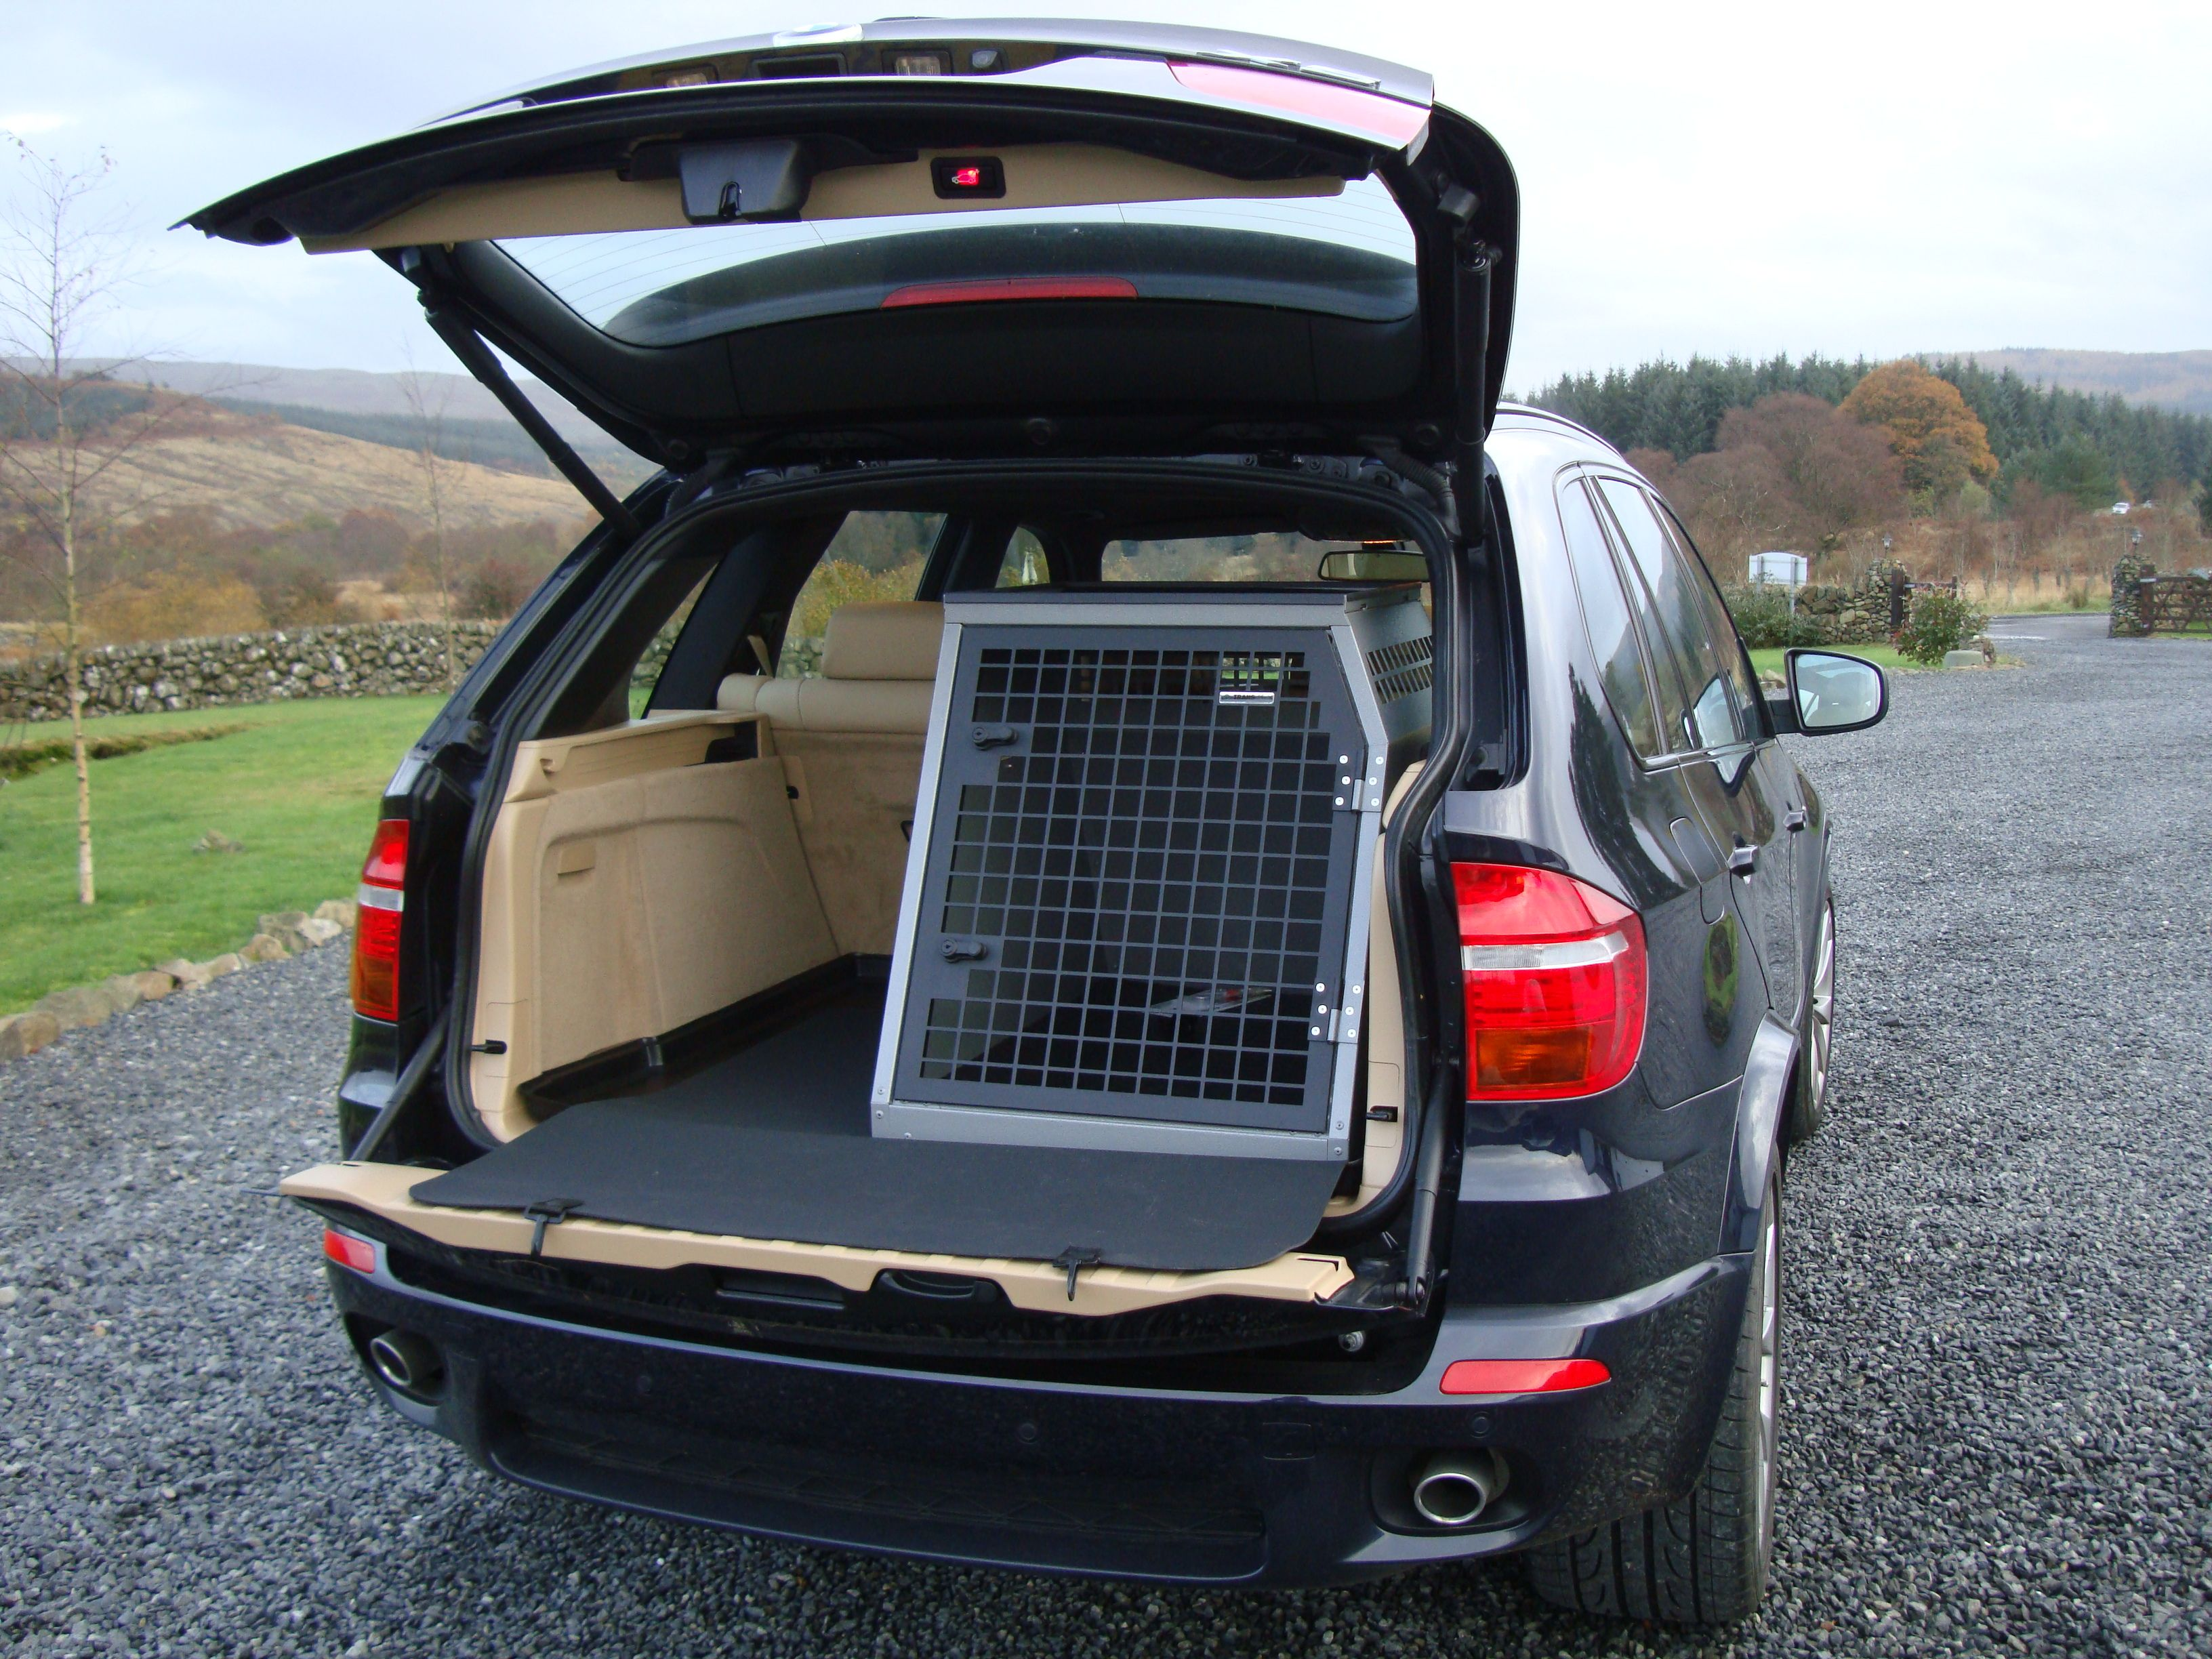 Transk9 B23 Bmw X5 Dog Cage Dog Crate Www Transk9 Com Puppies Tips Dog Crate Dog Cages